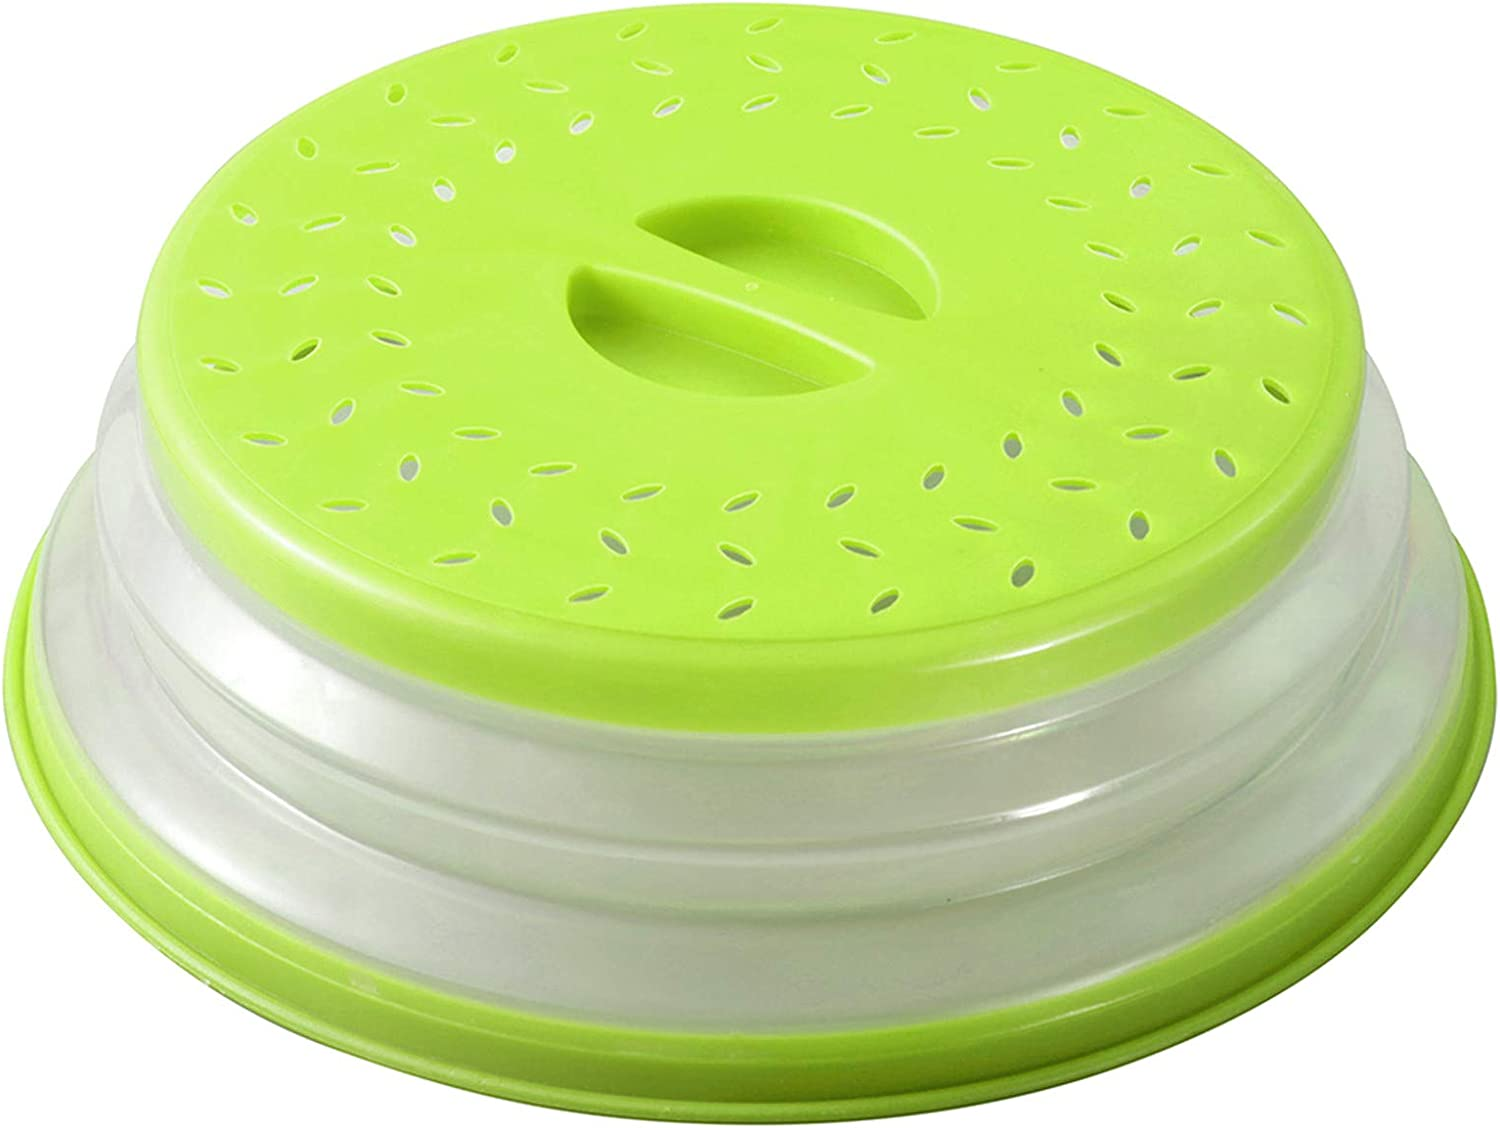 Microwave Plate Cover 10.5 inch Collapsible Microwave Cover for Food,Splatter Proof Guard Plate, Fruit and Vegetable Dish Drainer Basket,BPA-Free,Easy Grip (Green)